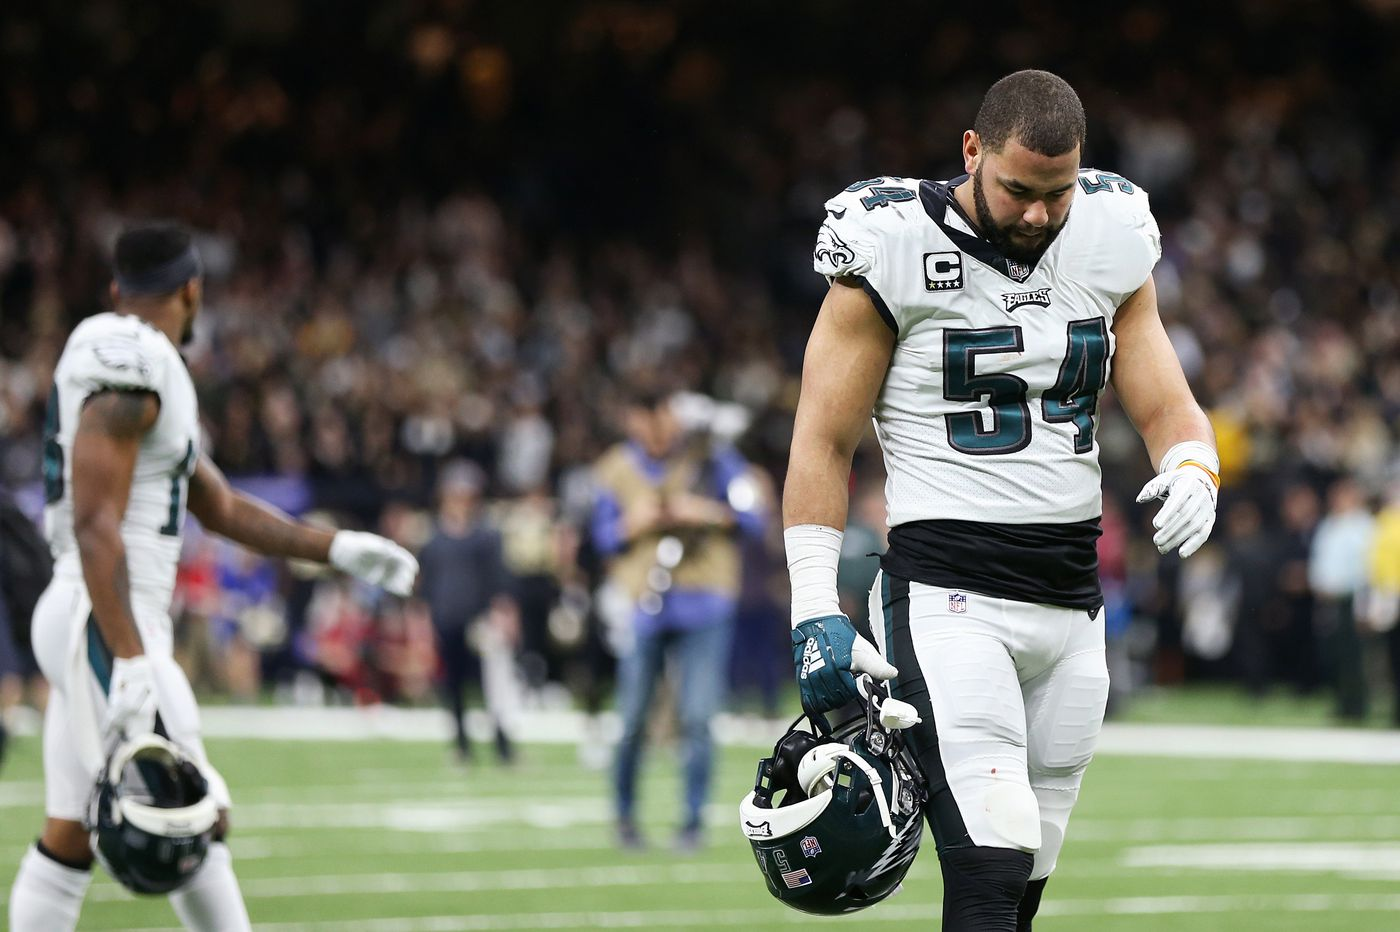 Eagles' Kamu Grugier-Hill likely to miss season opener with knee injury